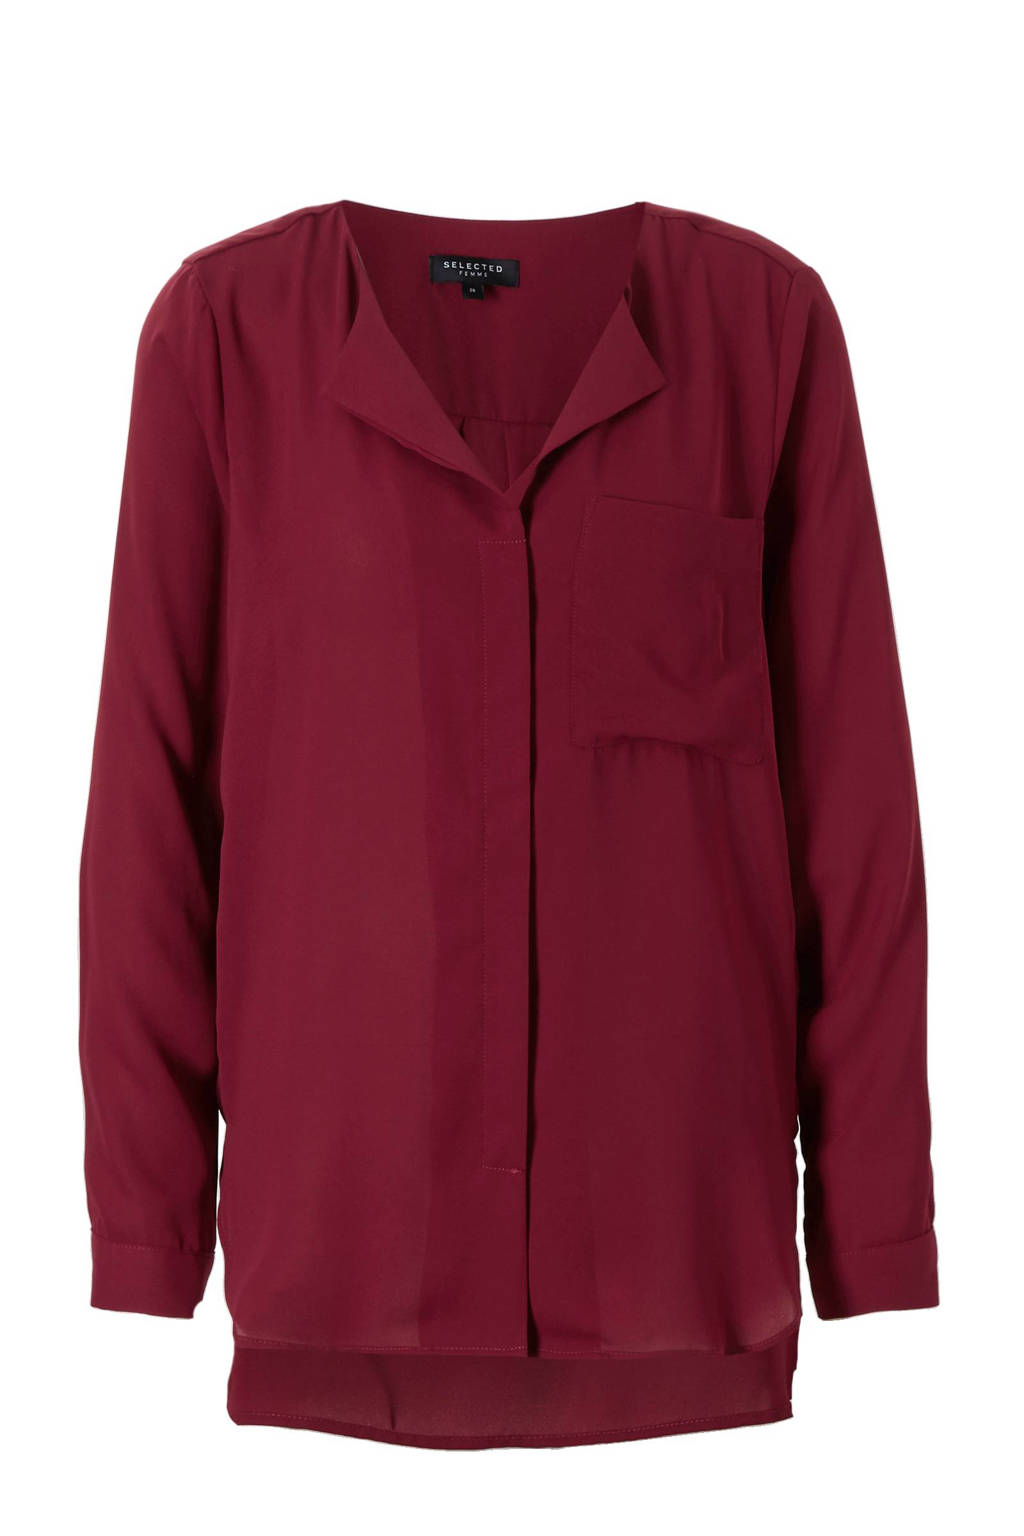 SELECTED FEMME blouse, Donkerrood